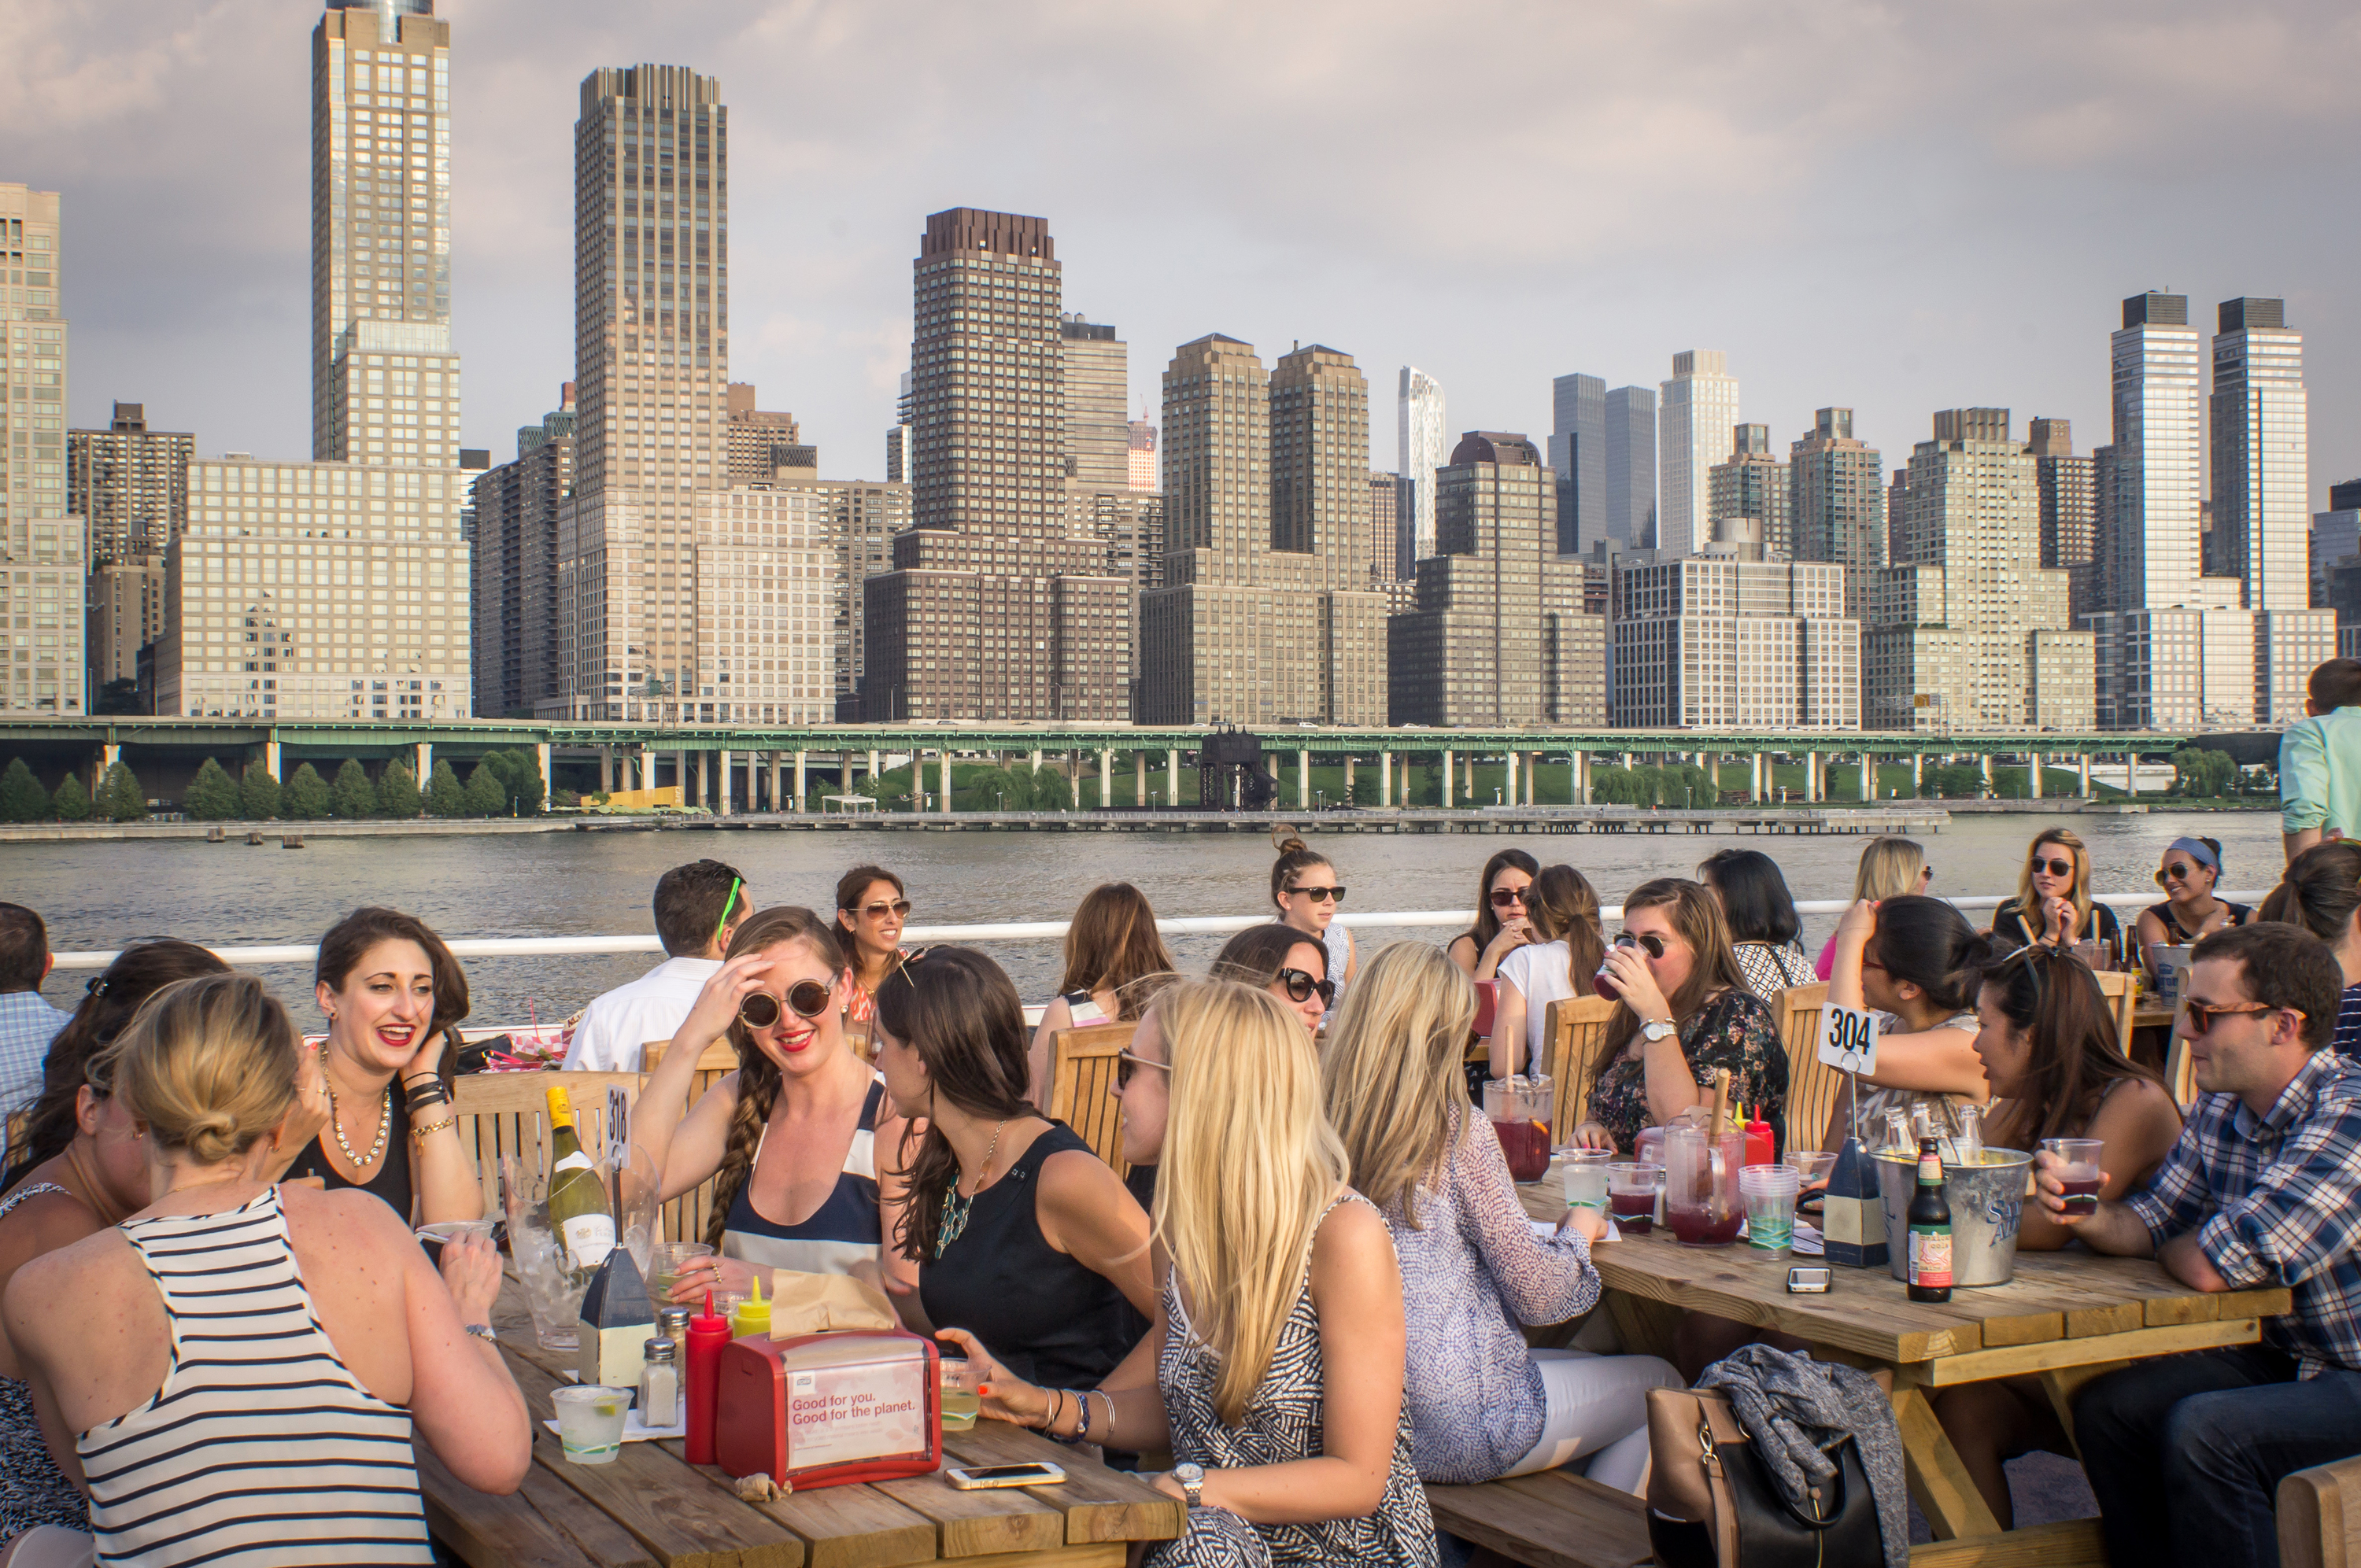 Best Waterfront Restaurants Nyc For Stunning City Views